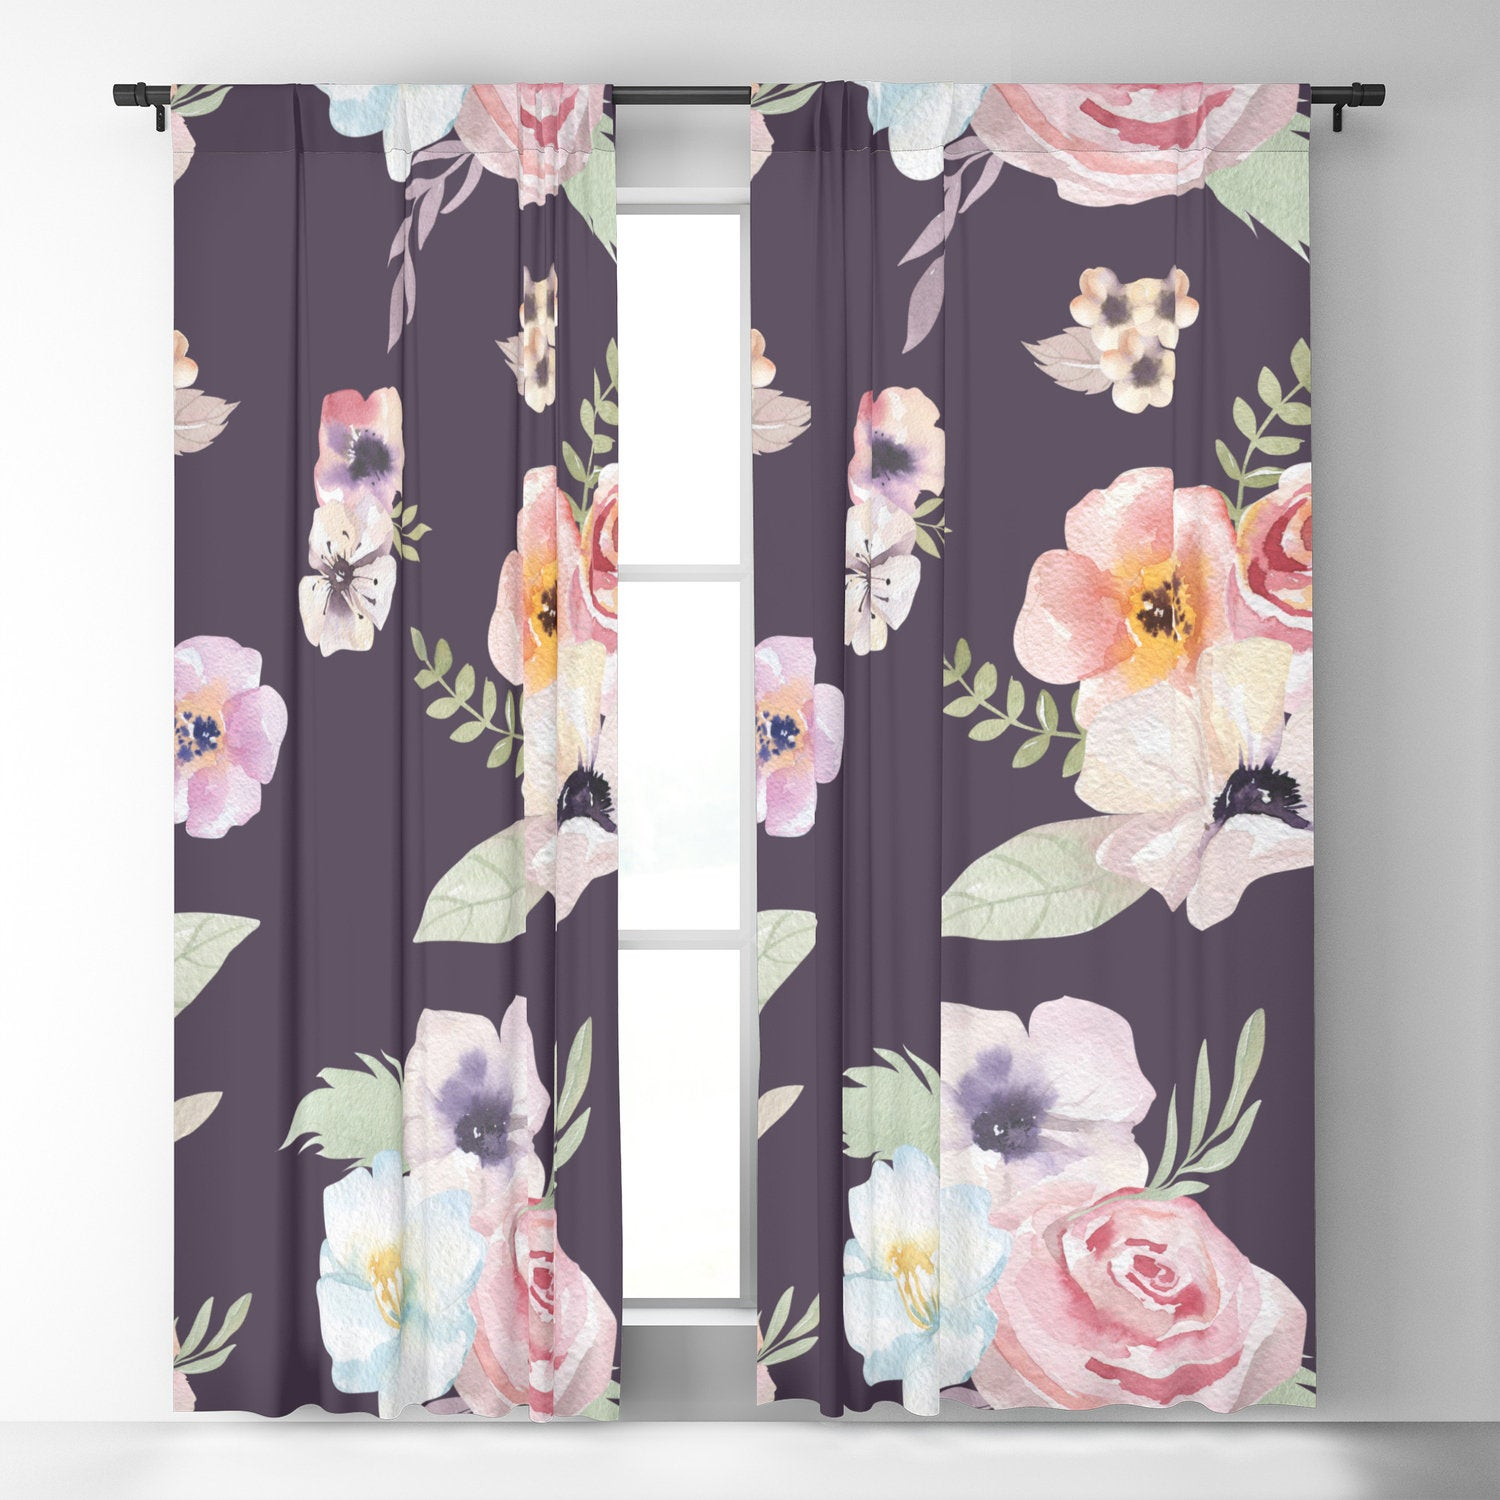 Window Curtains – Watercolor Floral I – Eggplant Pink – 50 X 84 Pertaining To Andorra Watercolor Floral Textured Sheer Single Curtain Panels (Image 20 of 20)